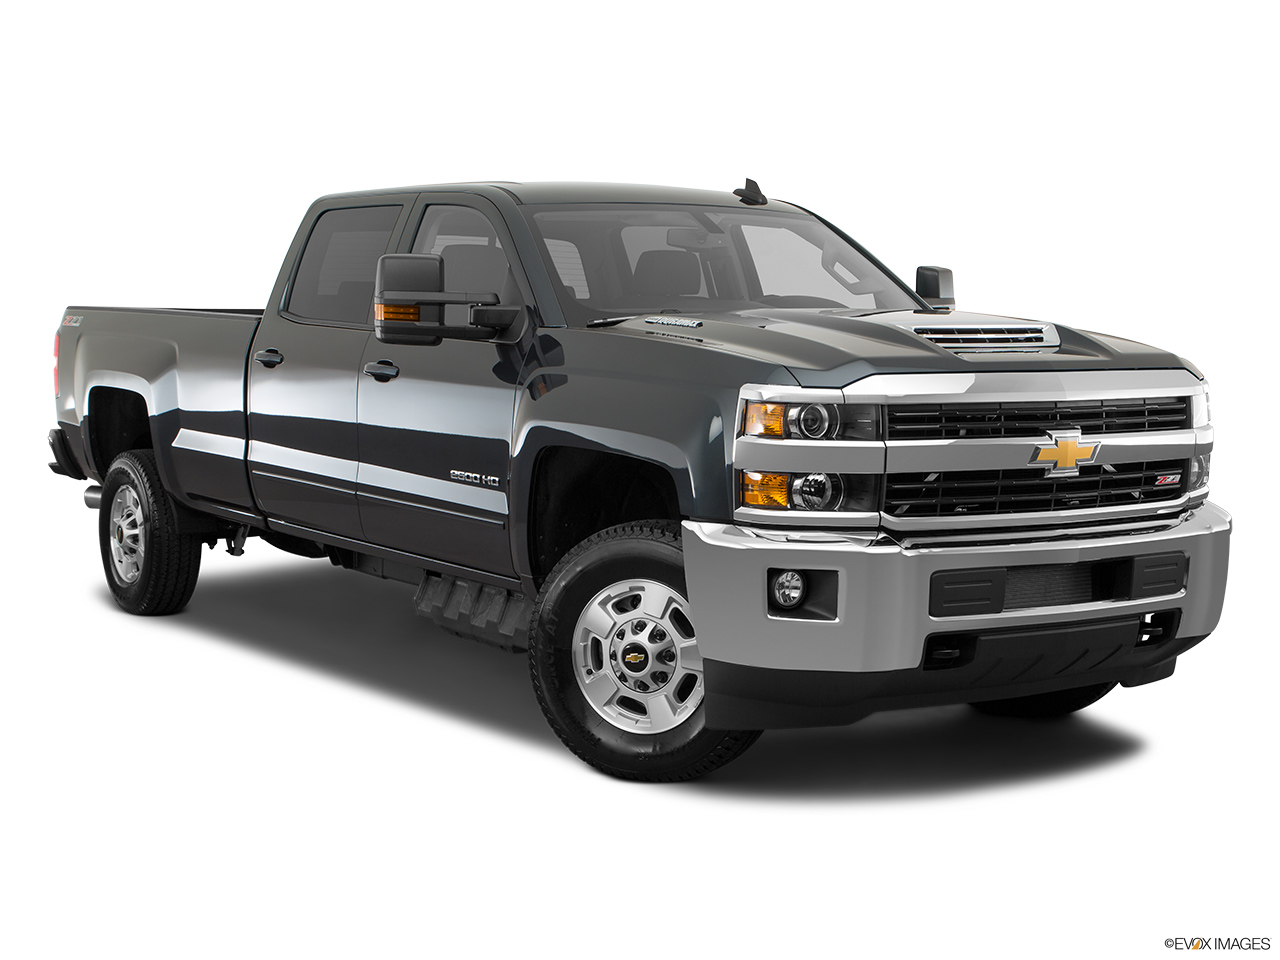 car pictures list for chevrolet silverado midnight edition 2017 3500 uae yallamotor. Black Bedroom Furniture Sets. Home Design Ideas